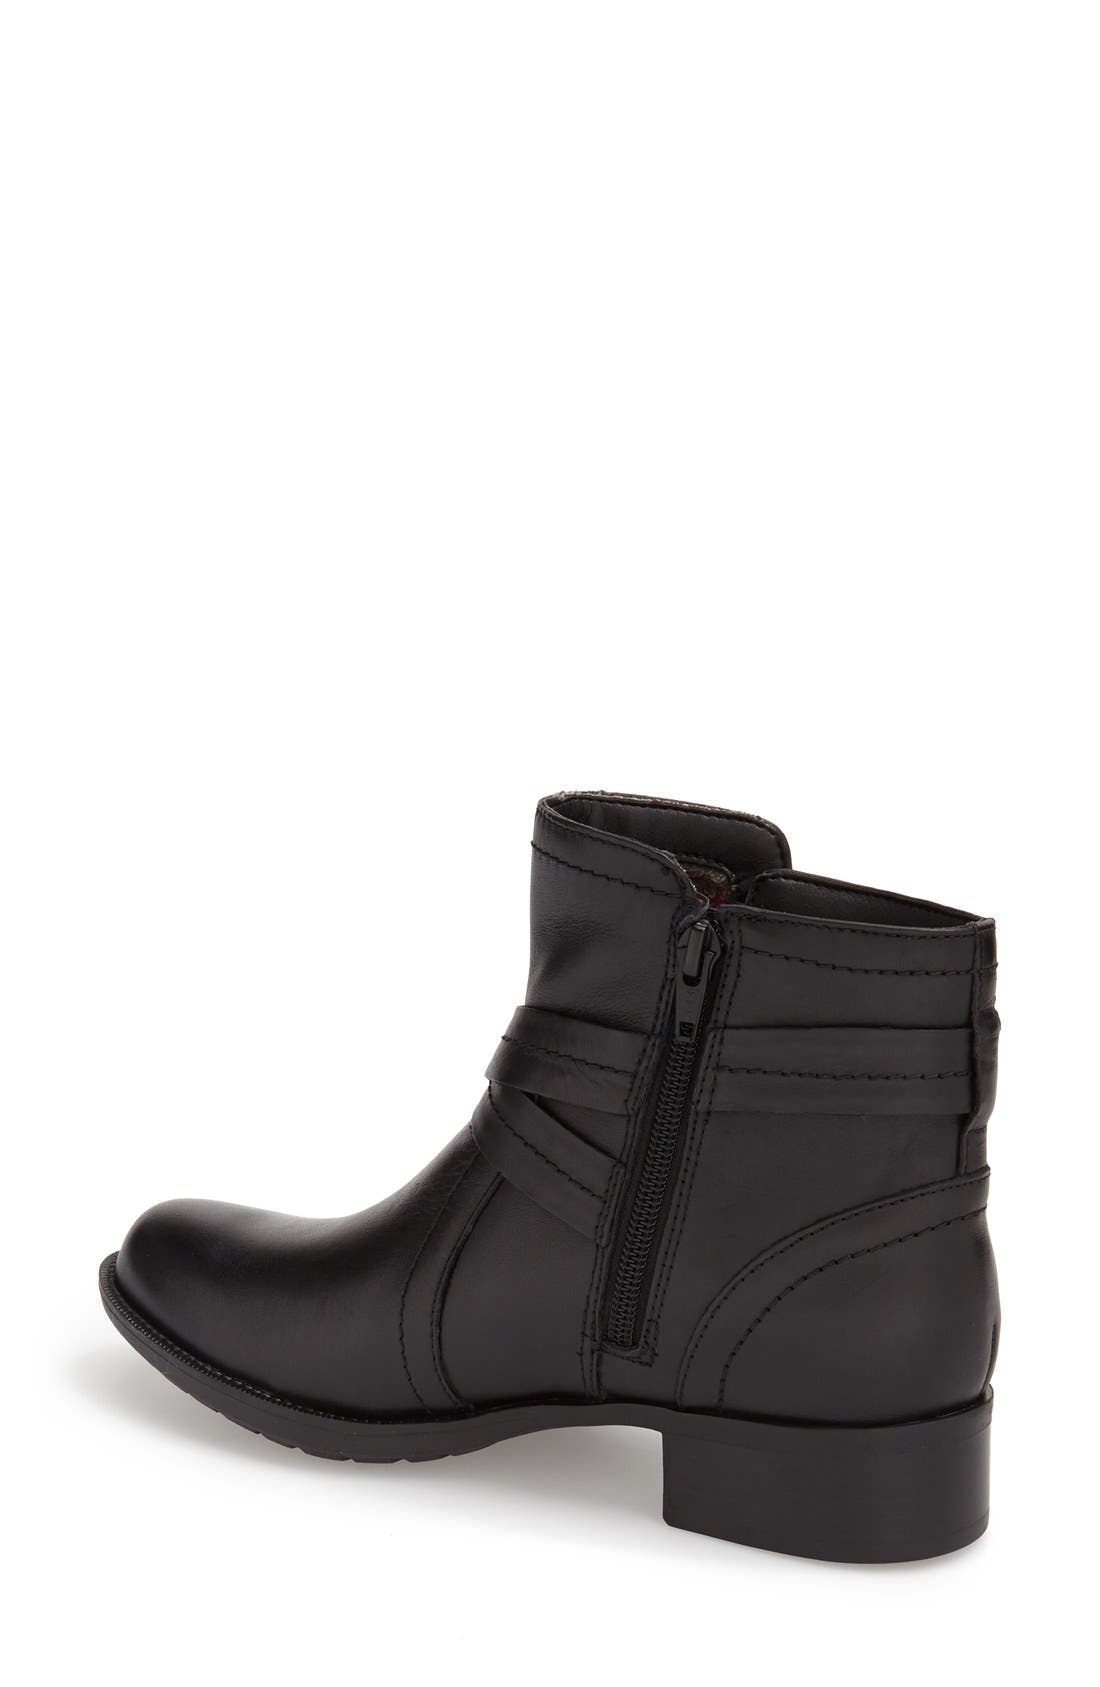 Caroline Waterproof Boot,                             Alternate thumbnail 2, color,                             BLACK LEATHER